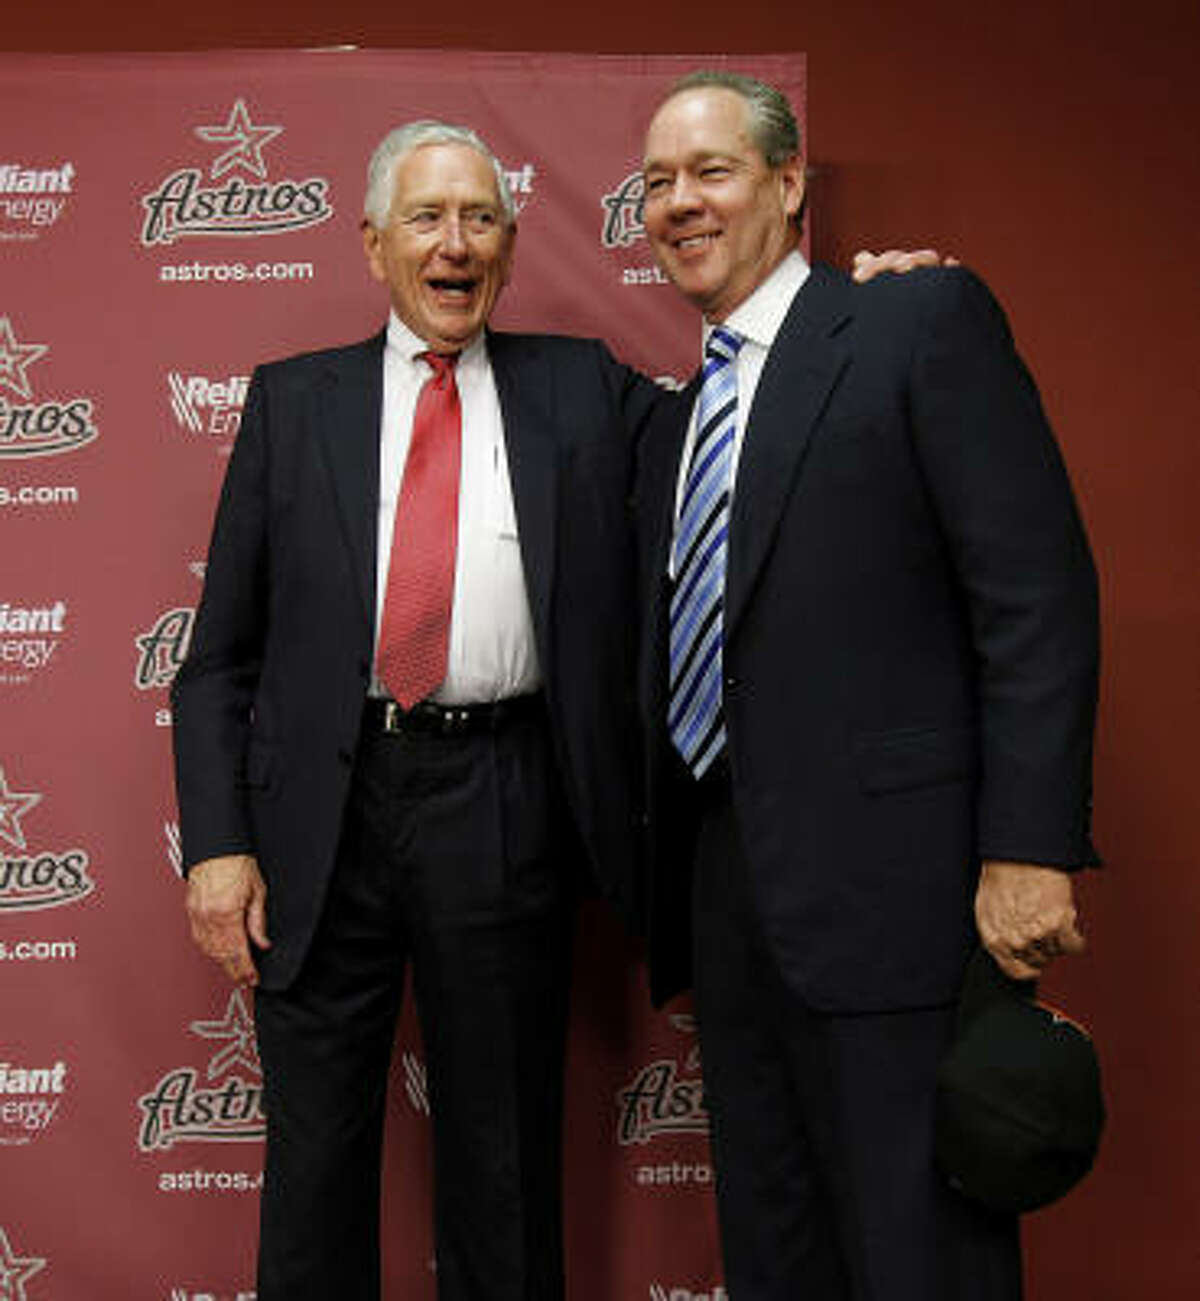 Astros owner Drayton McLane and Jim Crane take a photo together after McLane announced the purchase agreement with a group headed by Houstonian Jim Crane,Monday, May 16, 2011, in Houston.The sale of the ball club will be finalized once it is approved by Major League Baseball.